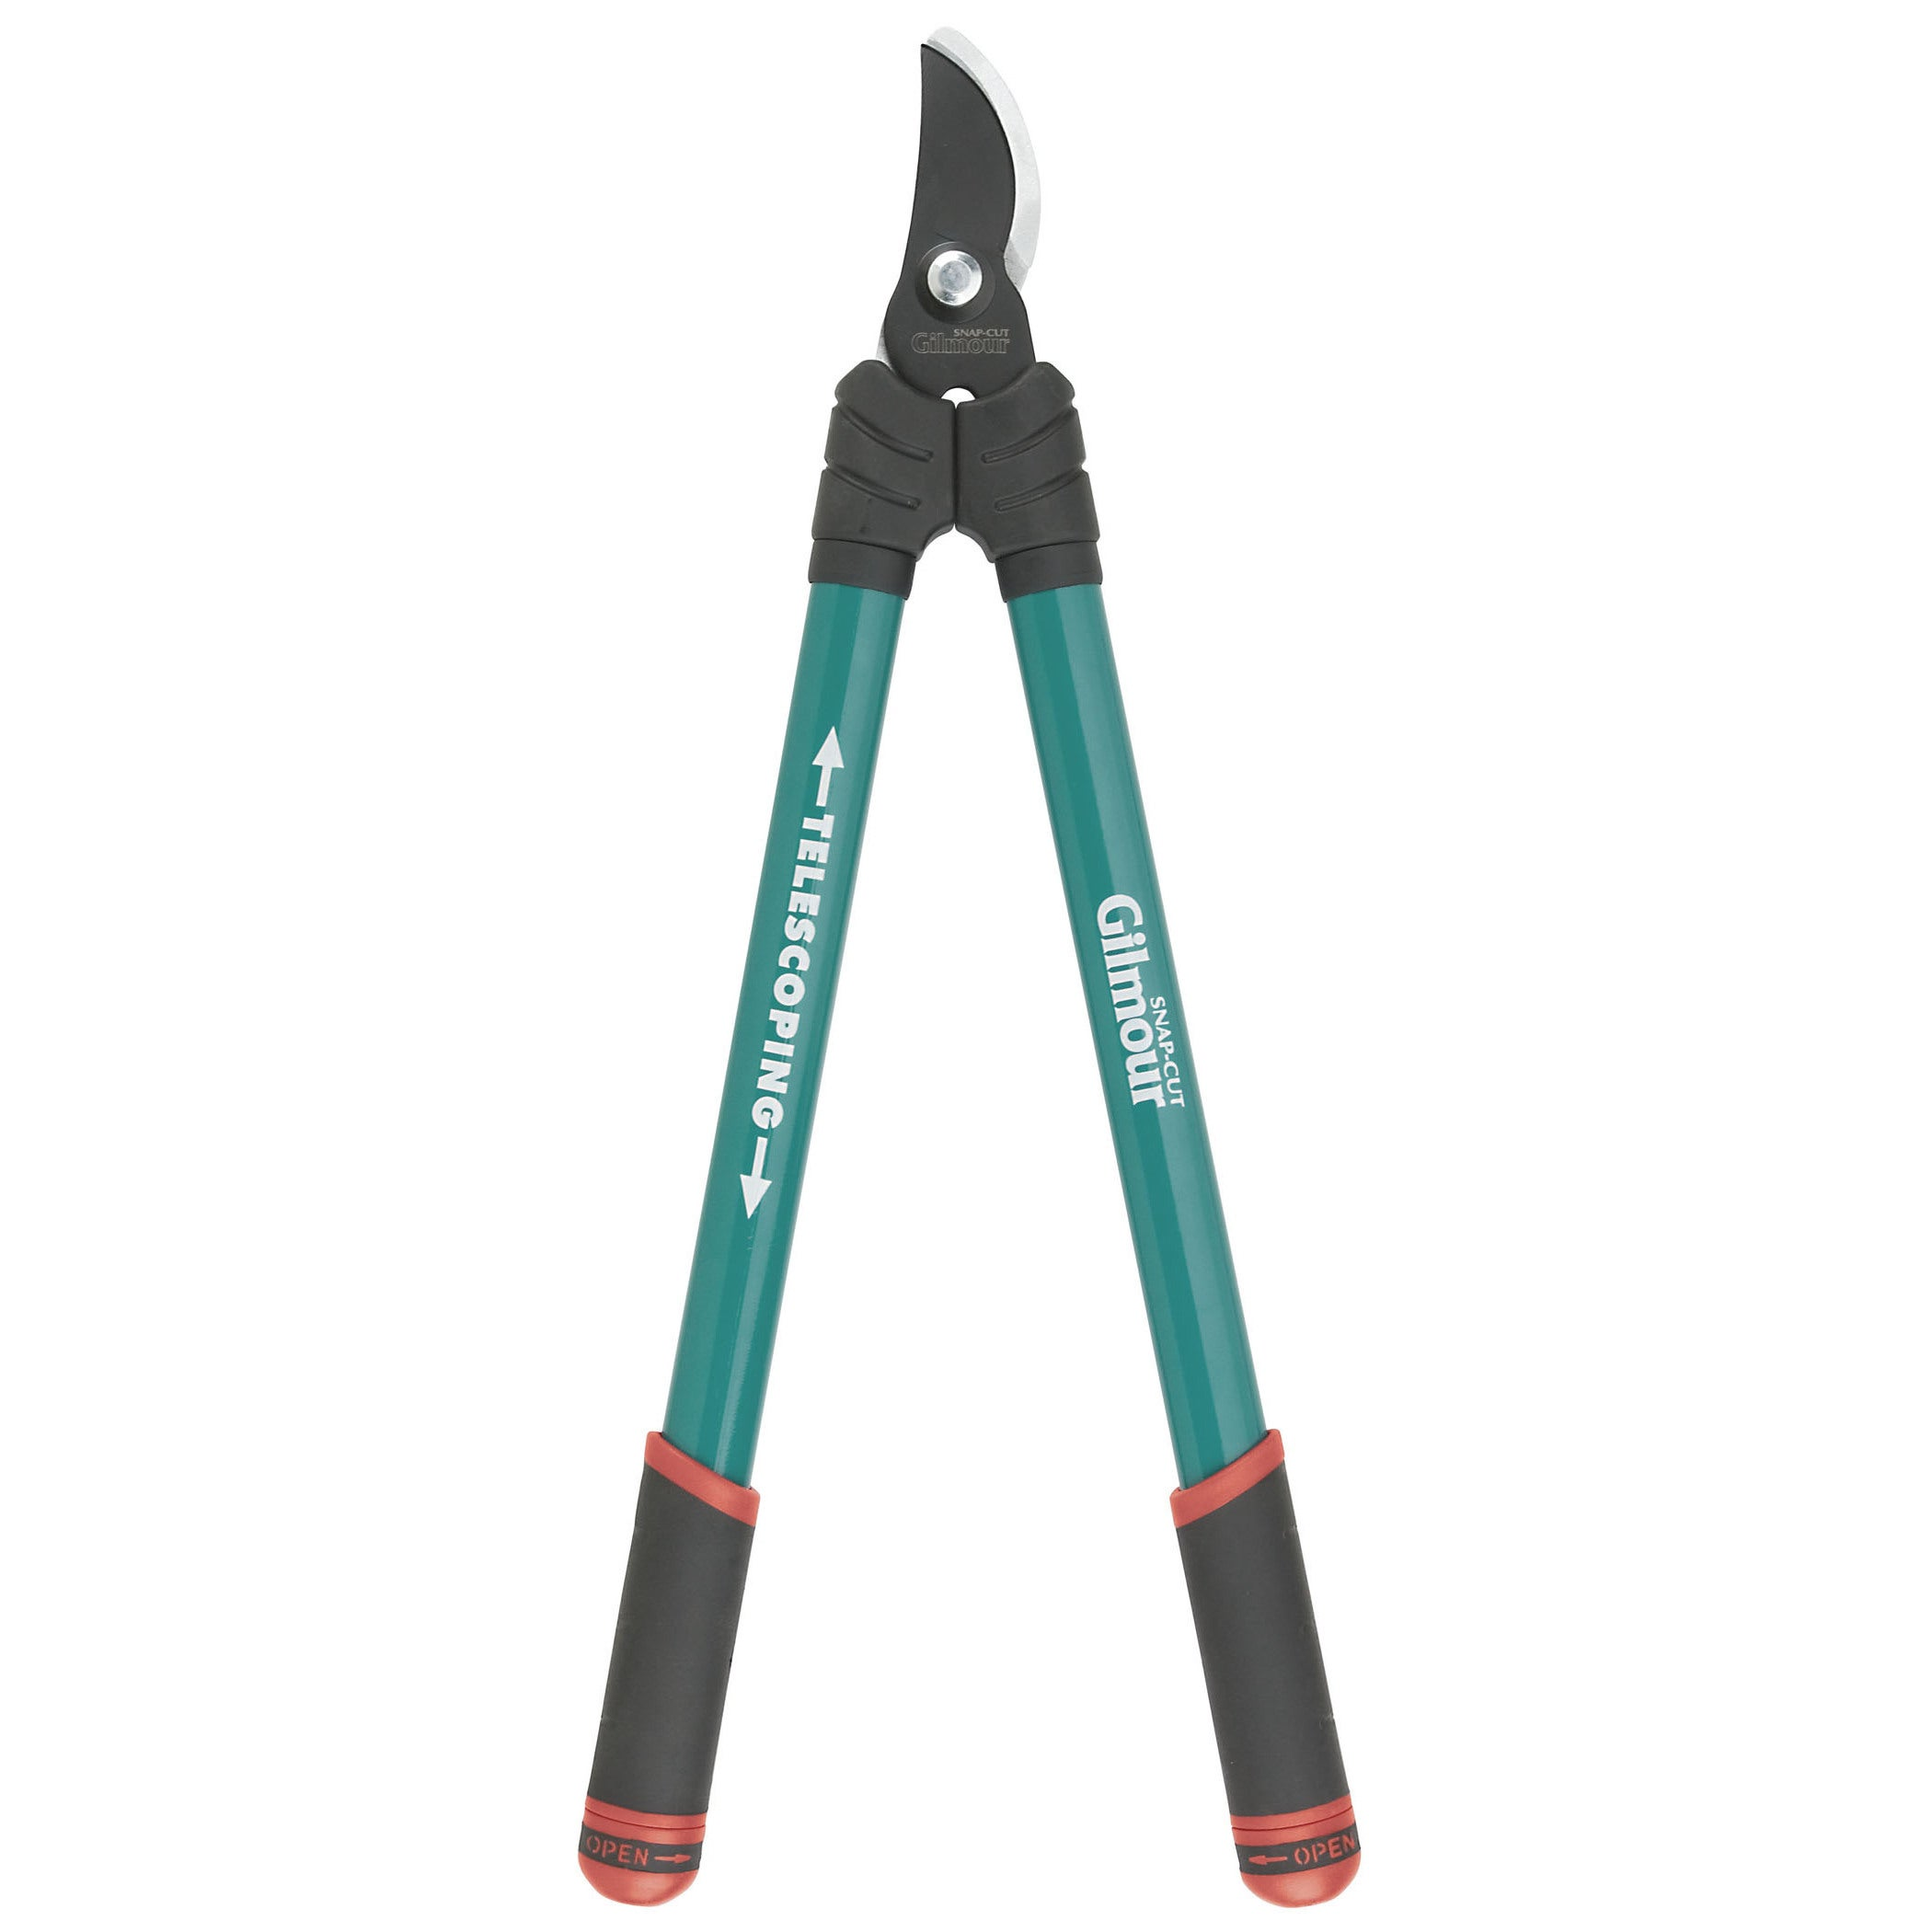 Snap Cut 1155 Bypass Pruner Loppers With Metal Handle (Lo...